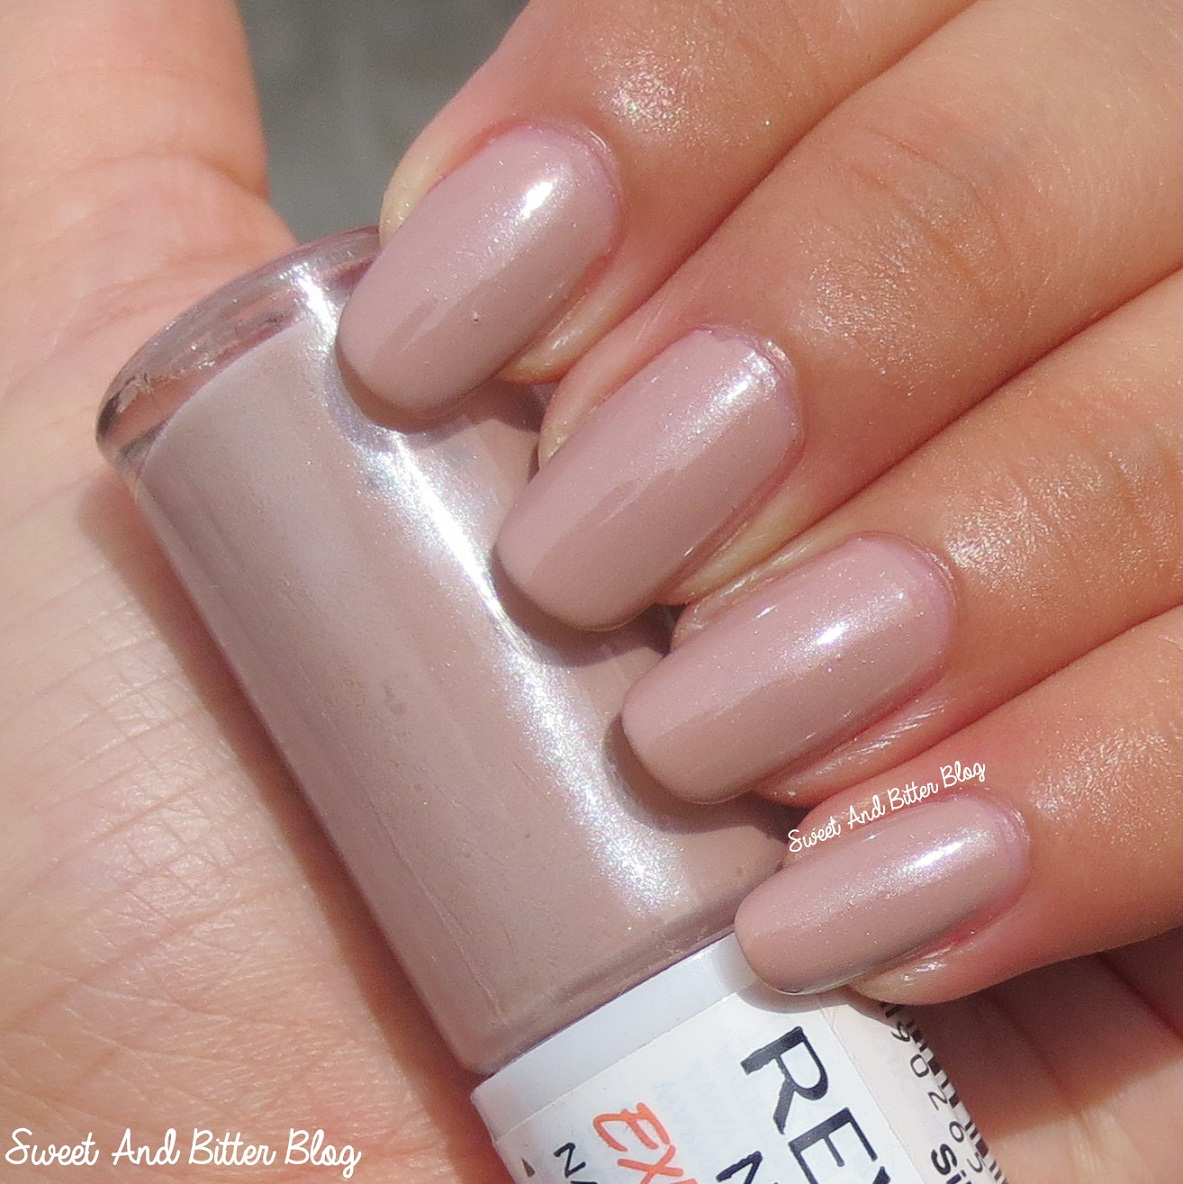 Revlon Nail Art Expressionist Silhouette Swatch And Review | Sweet ...